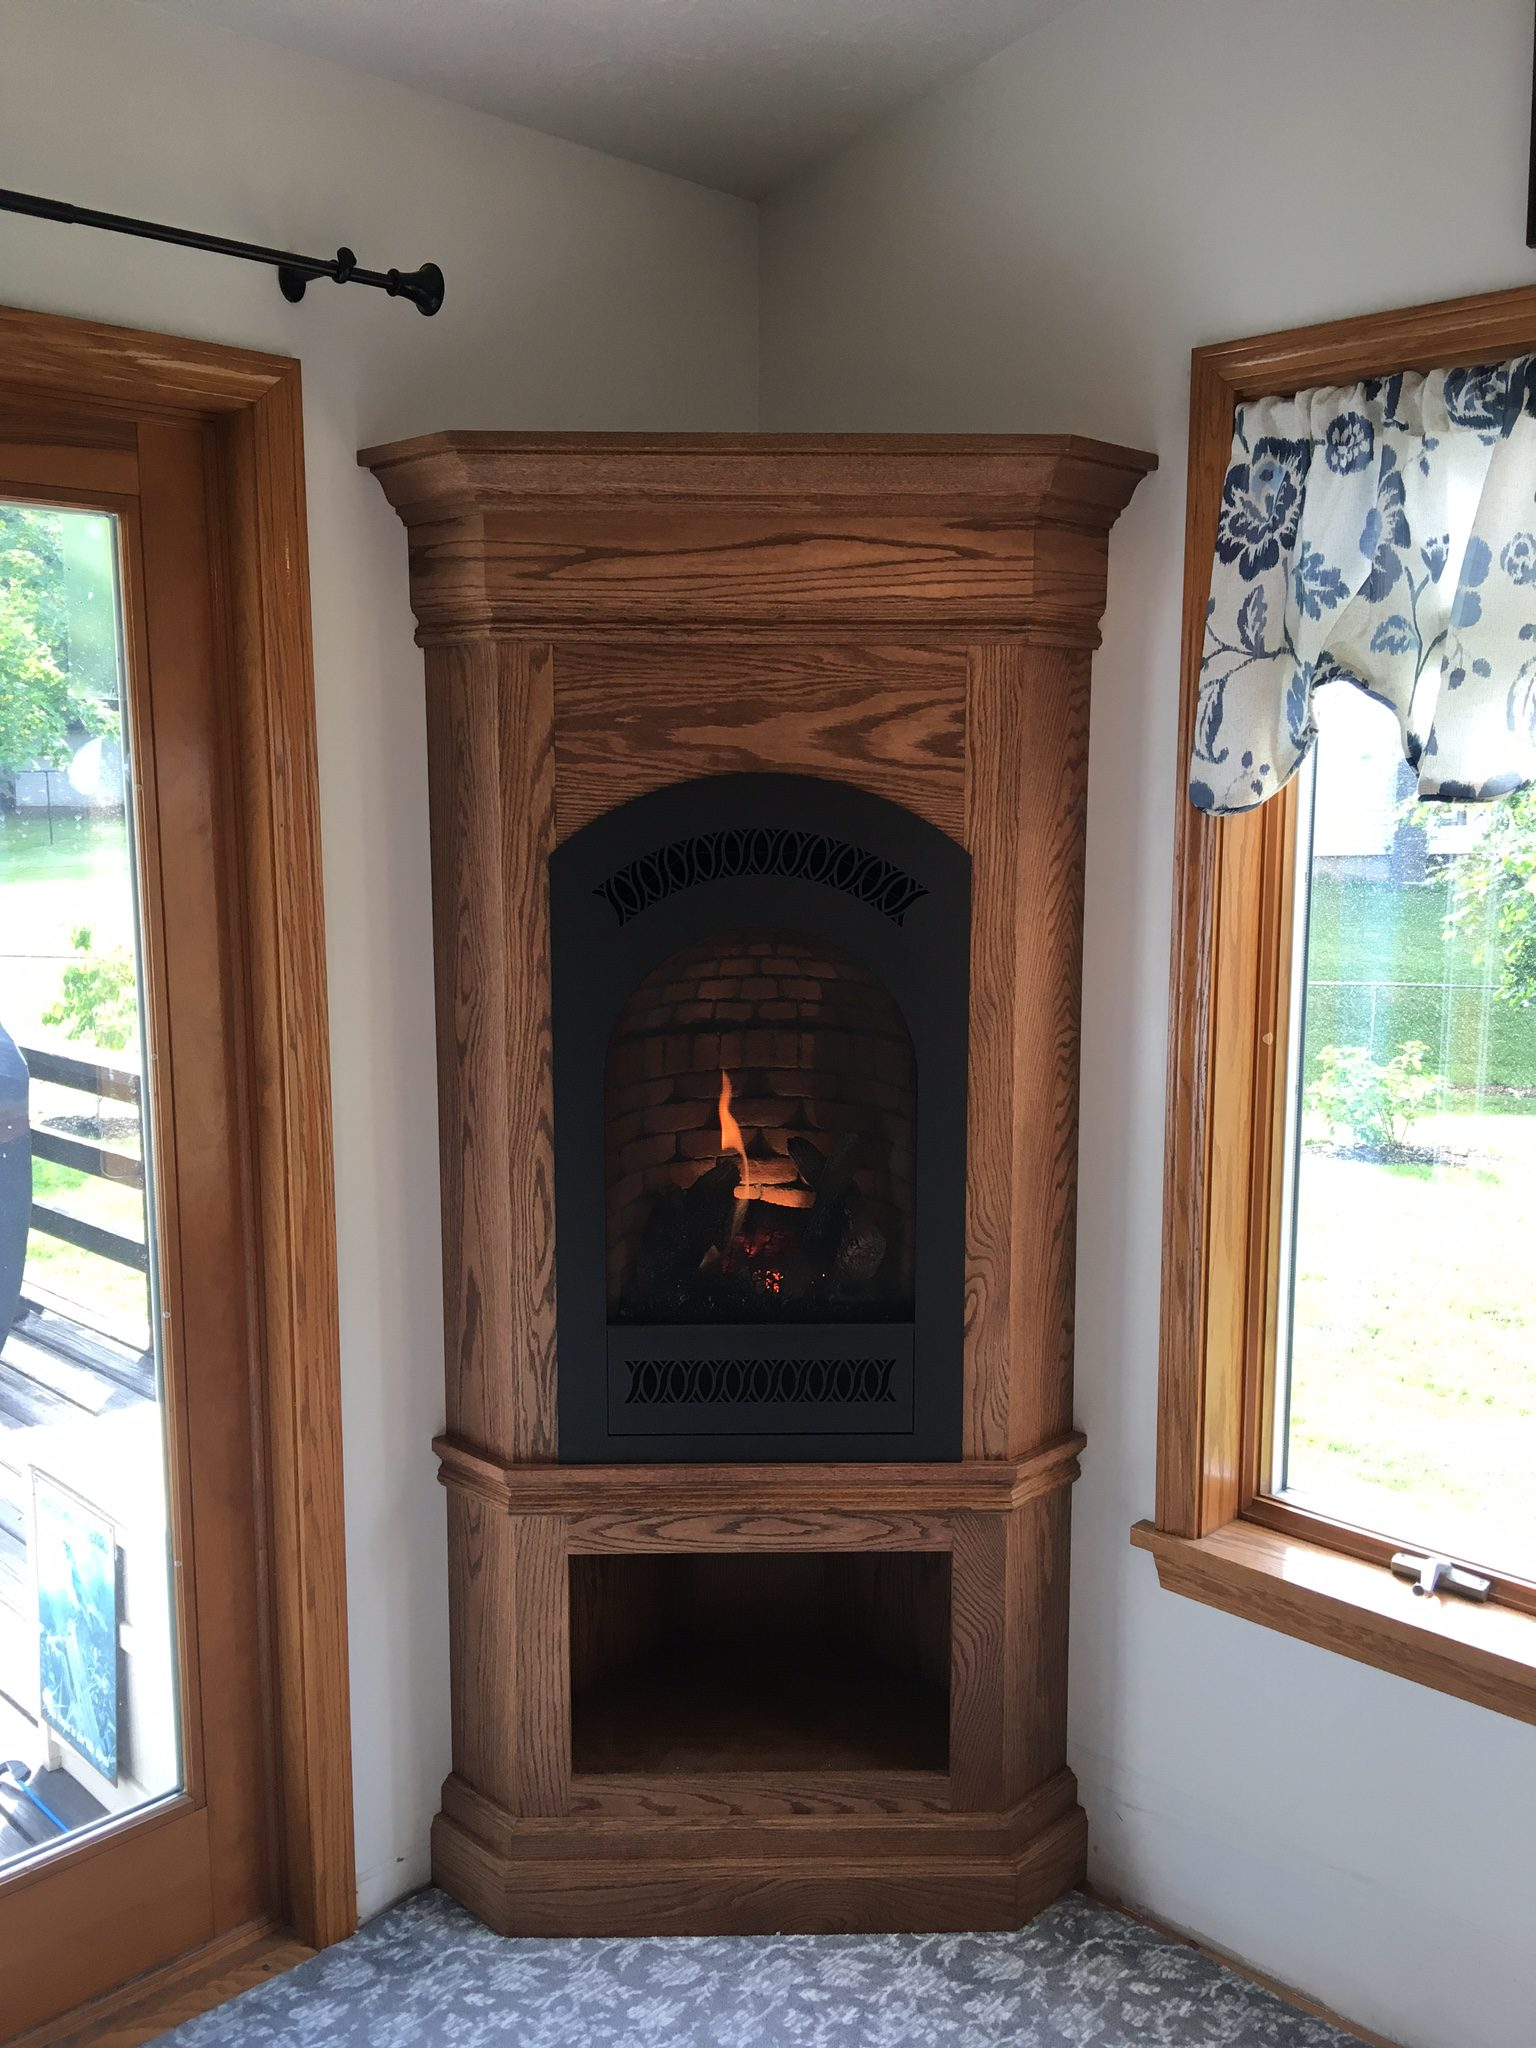 Image of a traditional 21TRV portrait gas fireplace by Travis Industries and J.C. Huffman Custom Cabinet.